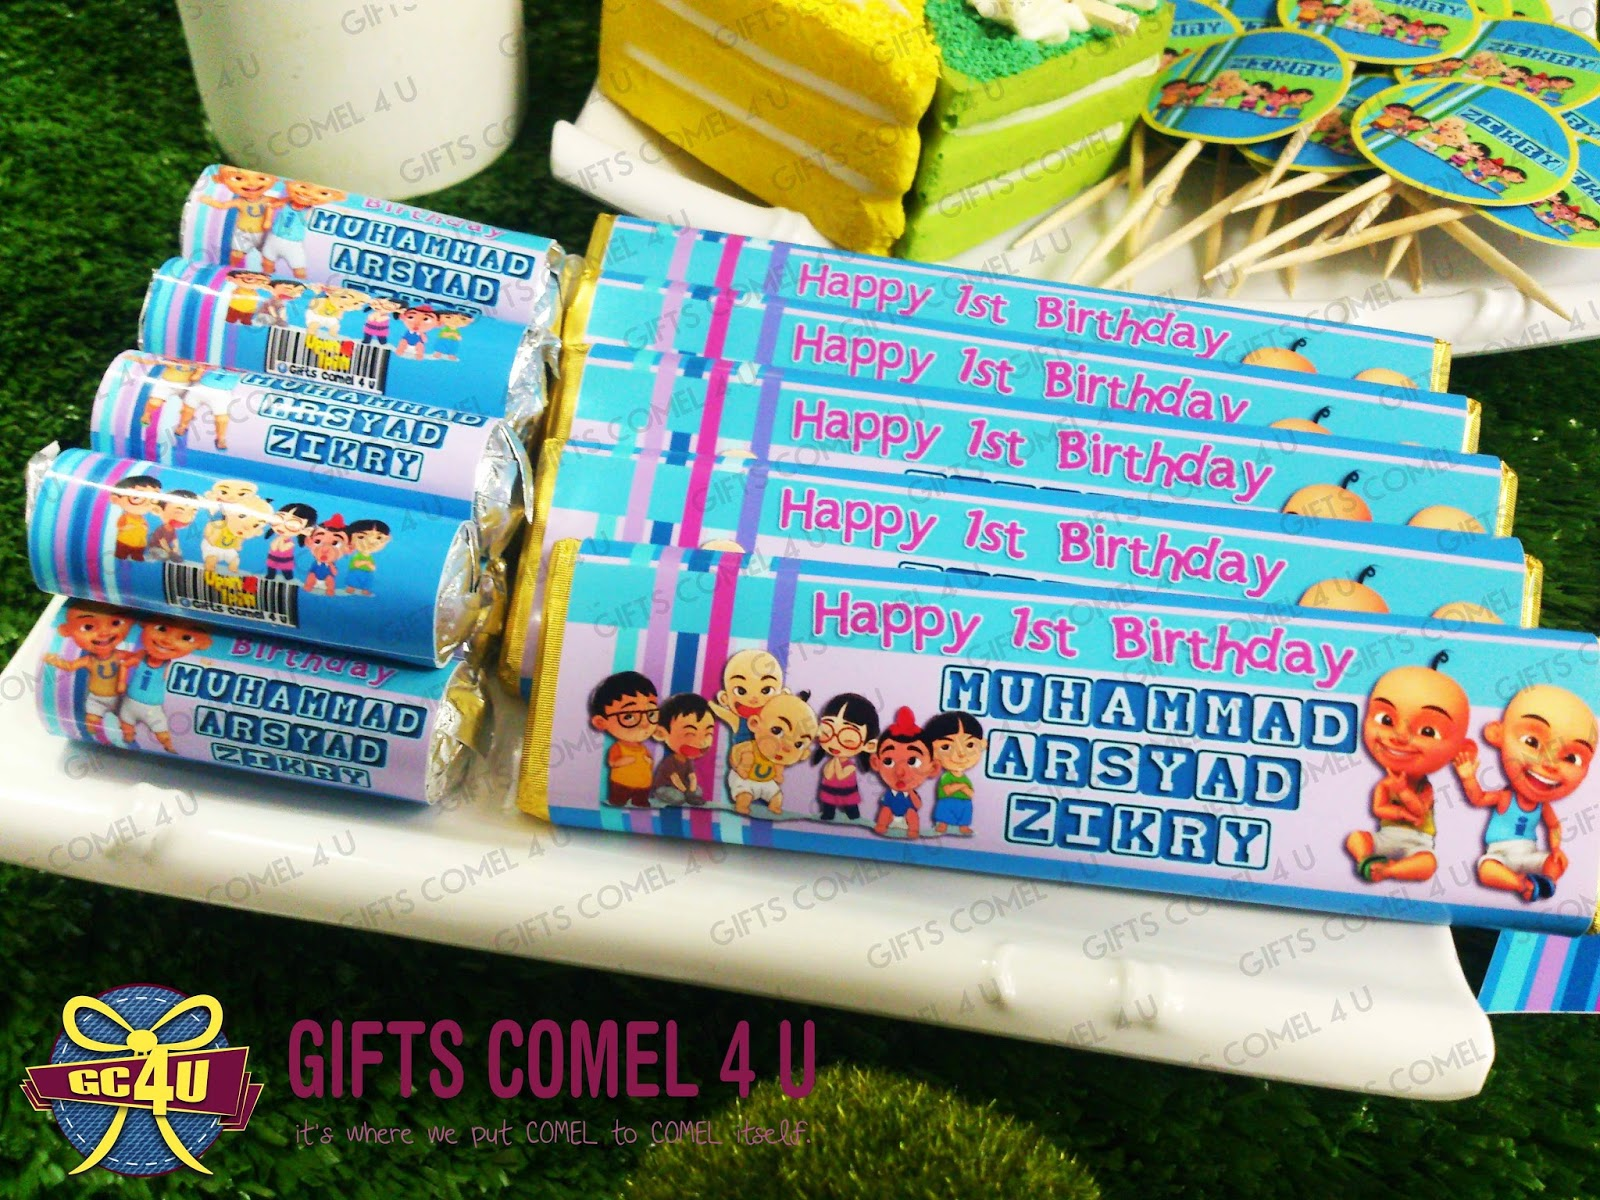 Gifts comel 4 u ordered by nor hazira binti omar upin ipin upin ipin friends bluegreen theme birthday set stopboris Image collections